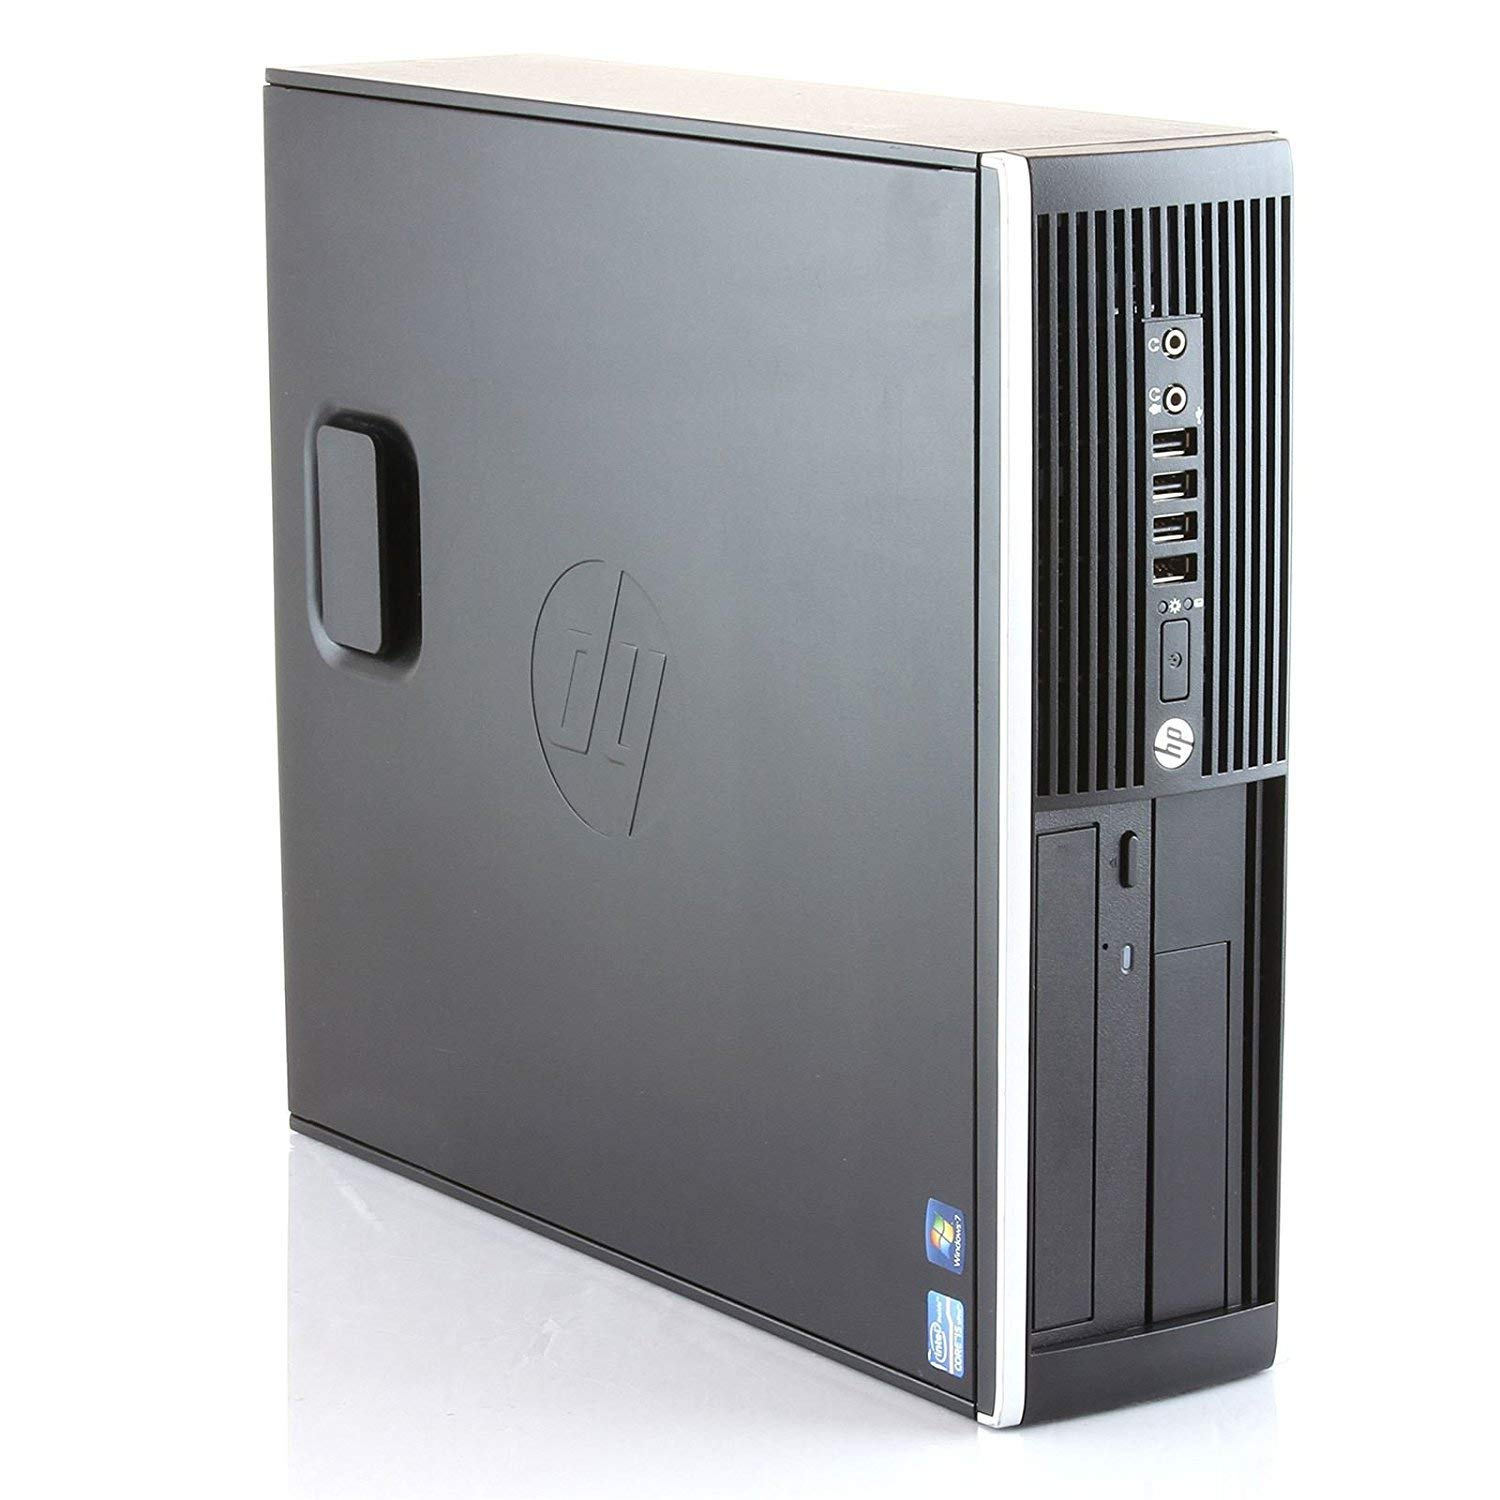 HP Elite 8300-PC-desktop (Intel I5-3470, 3,2, DVD, 8 Hard GB RAM, 500gb, WIFI PCI Win7PRO) (REFURBISHED)